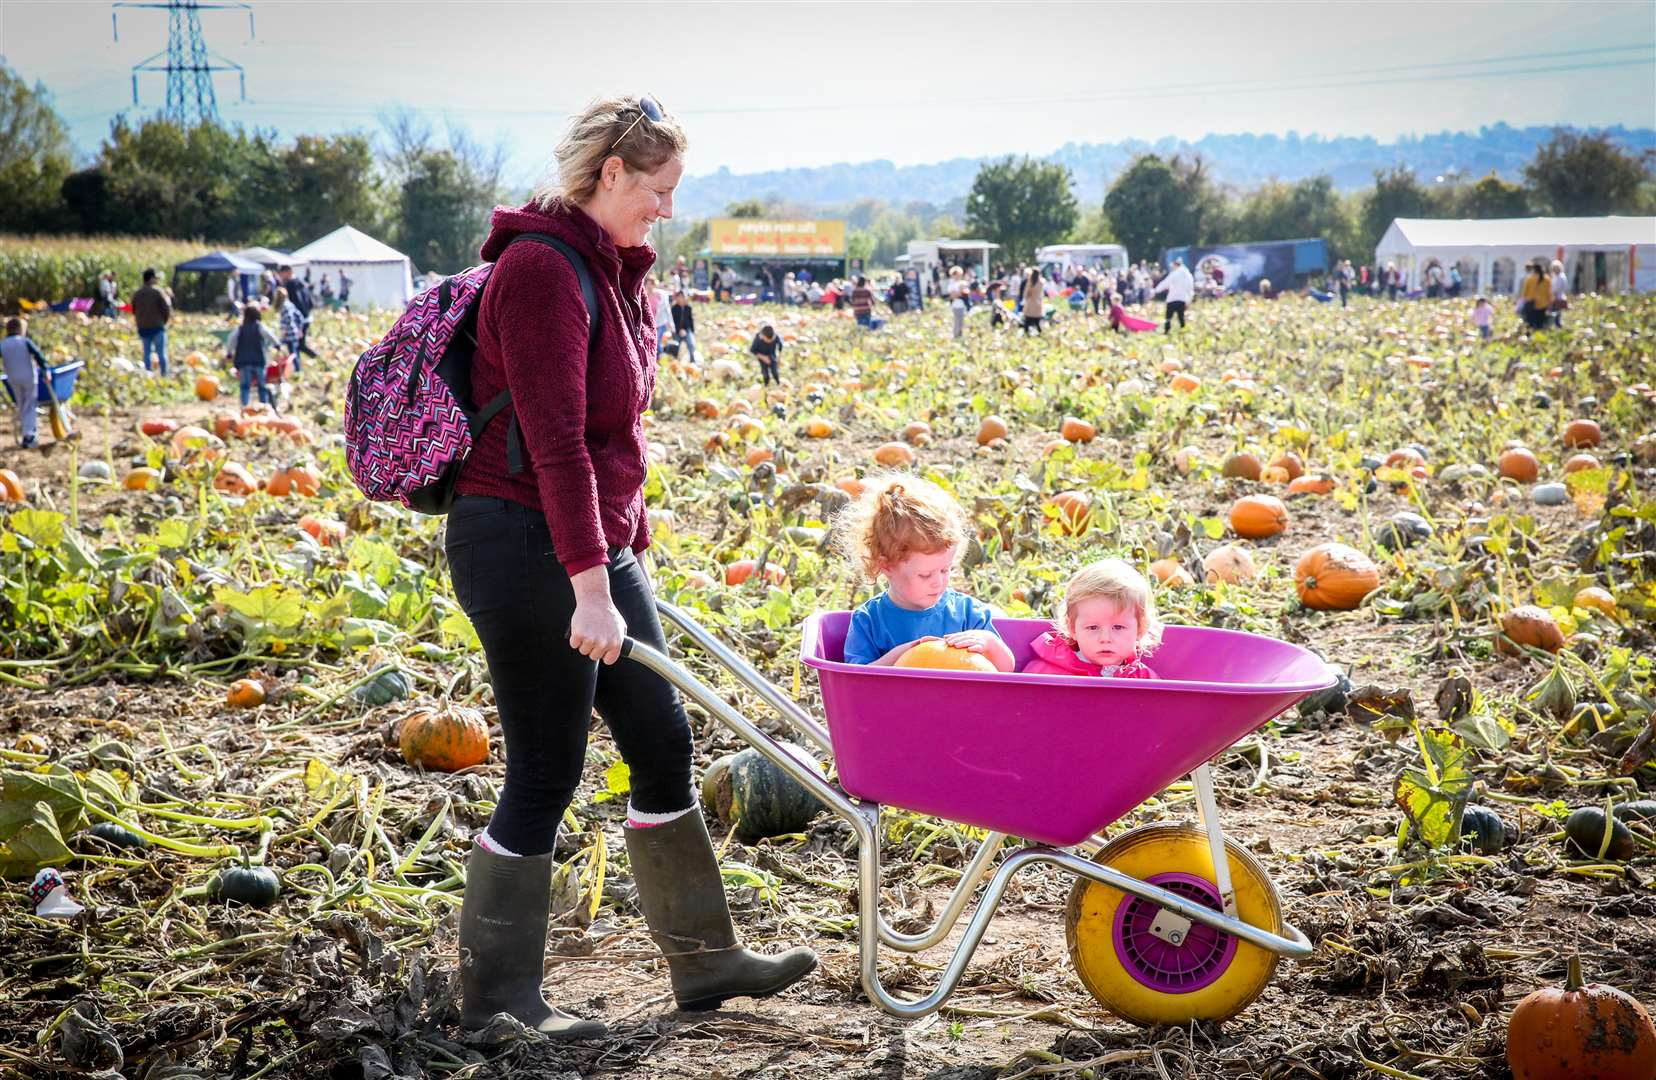 Family-friendly pumpkin picking at Pumpkin Moon, with Nicola Worsfold and Indiana, 2, and Aynara, 1, in a wheelbarrow. Picture: Matthew Walker